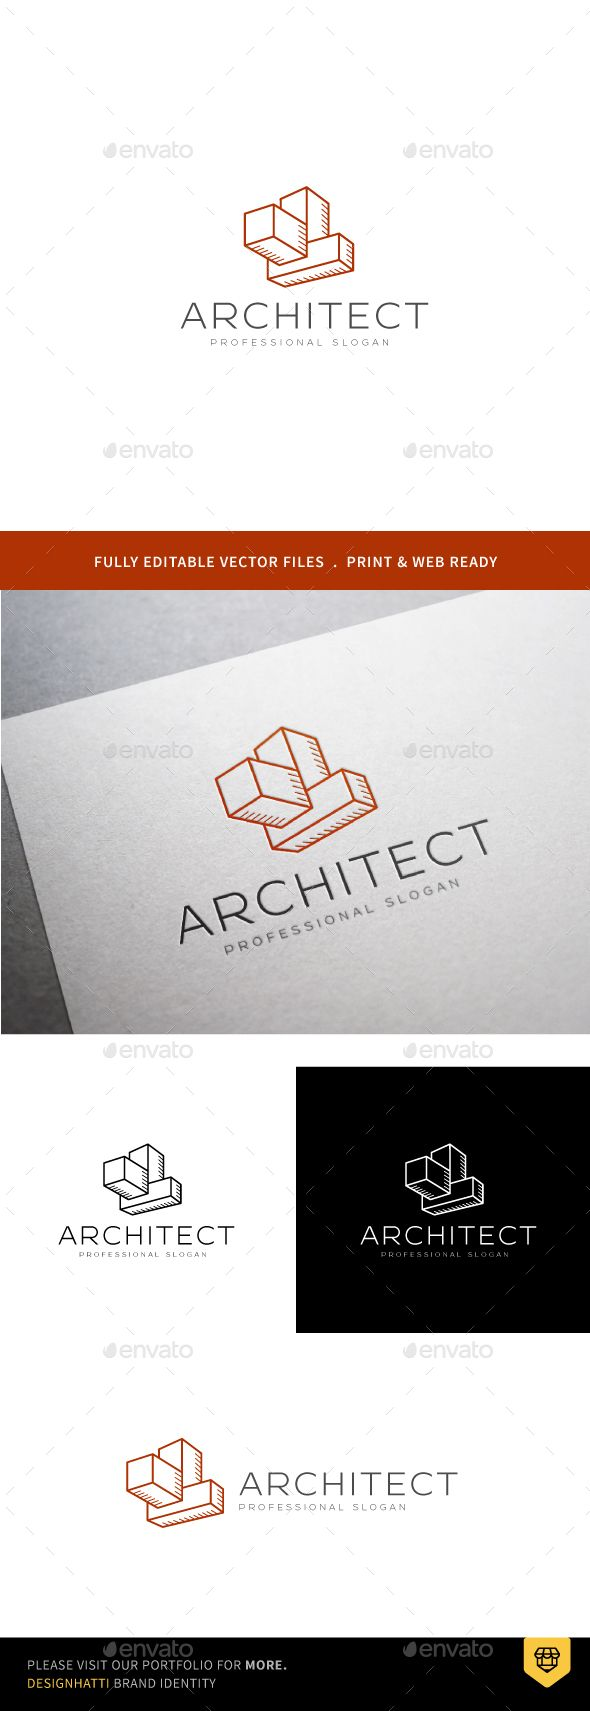 Architect Logo #photoshop #psd #builder #symbol • Available here → https://graphicriver.net/item/architect-logo/18403511?ref=pxcr